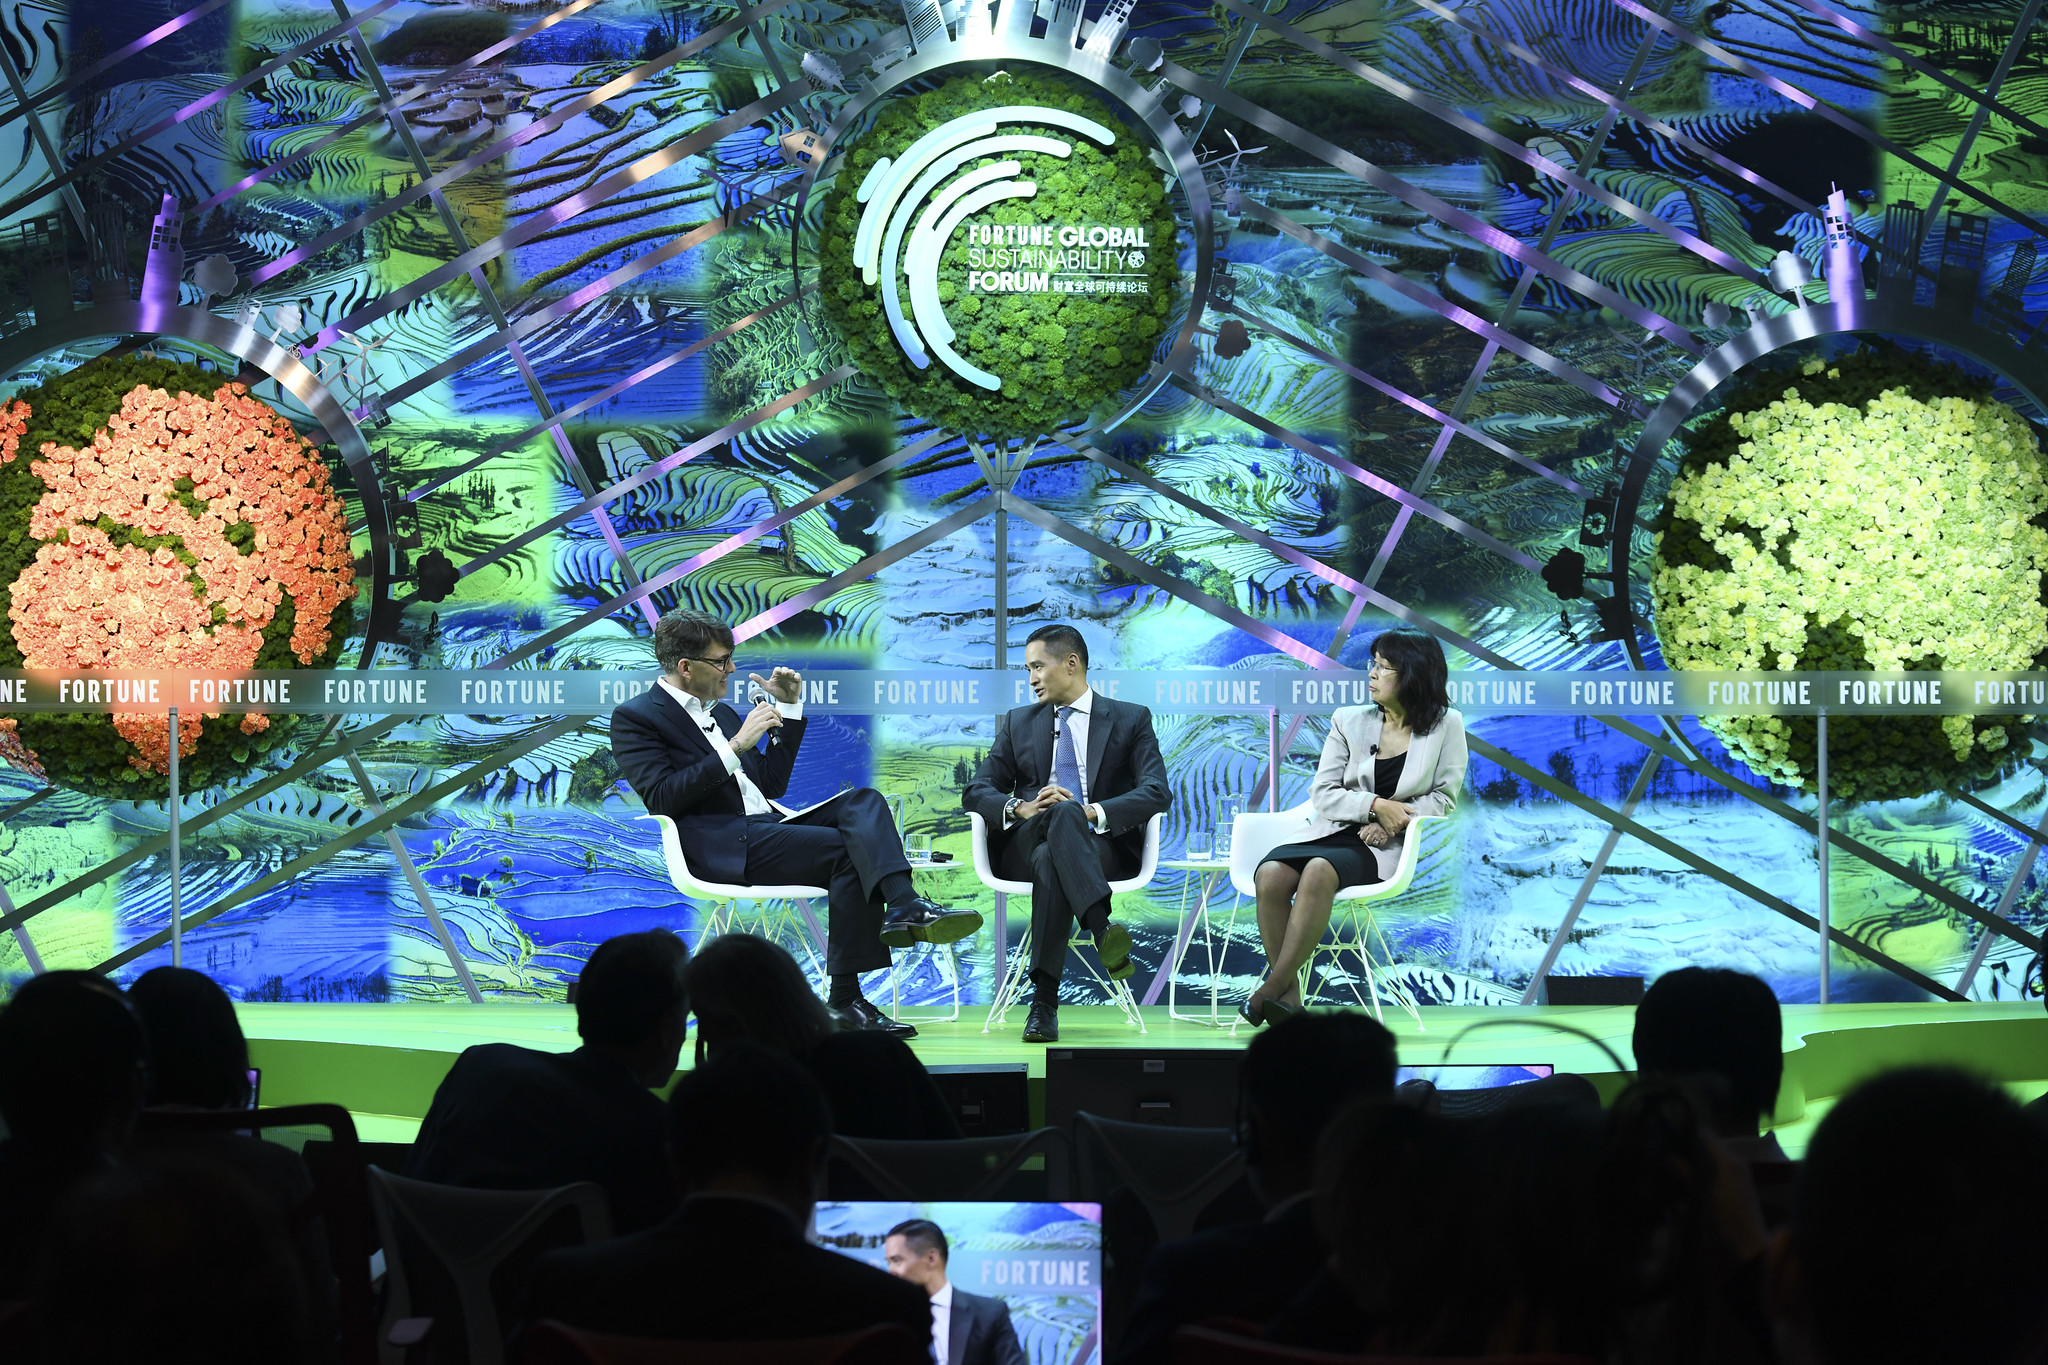 Fortune Global Sustainability Forum 2019